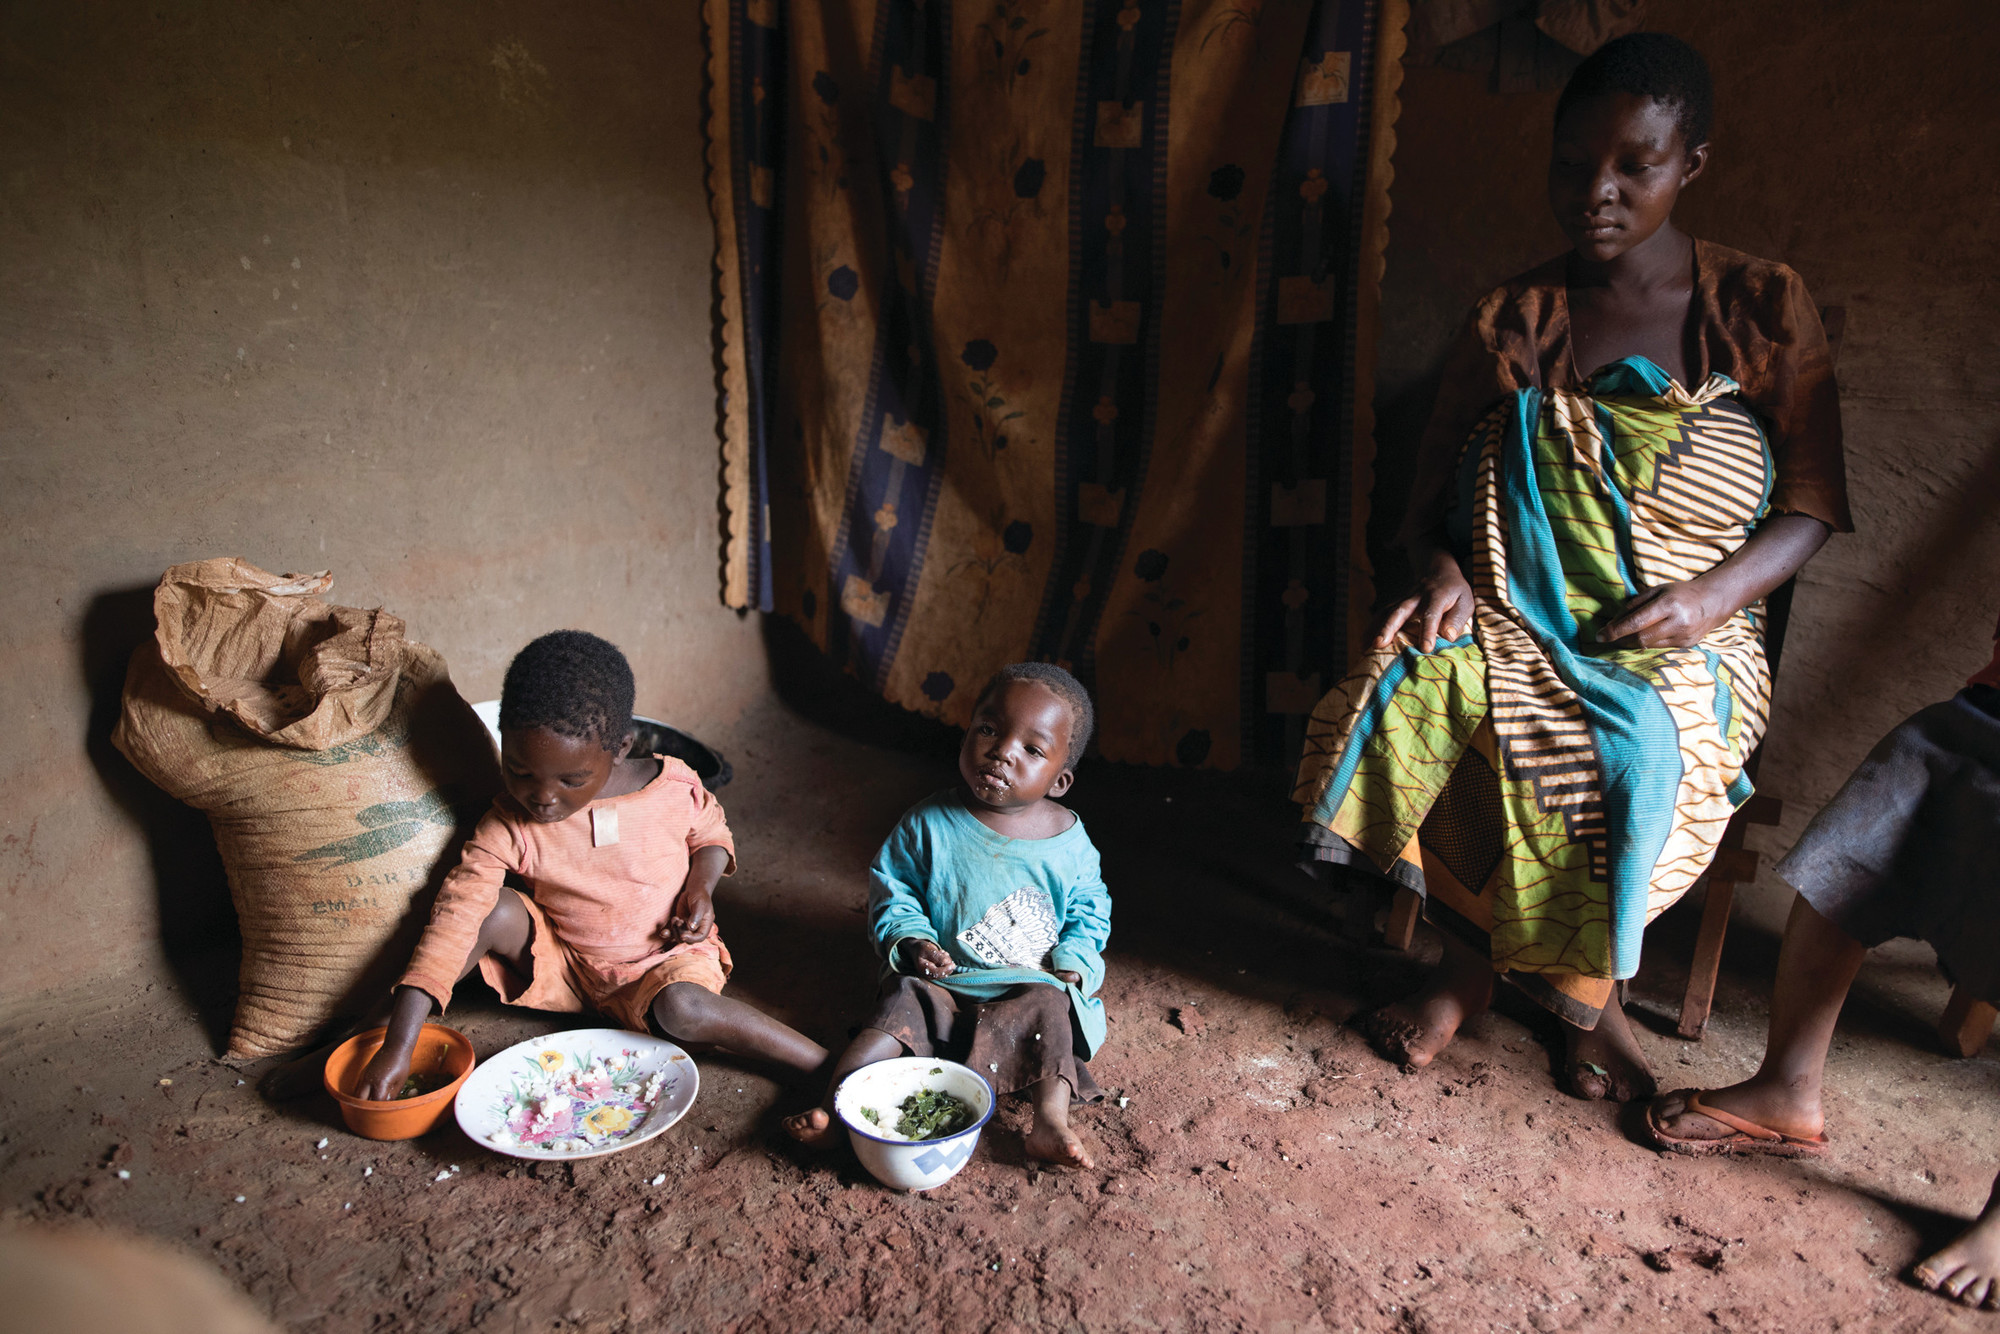 A pregnant mother sits on a wooden chair while two small children with plates of food in front of them sit on the dirt floor beside her.